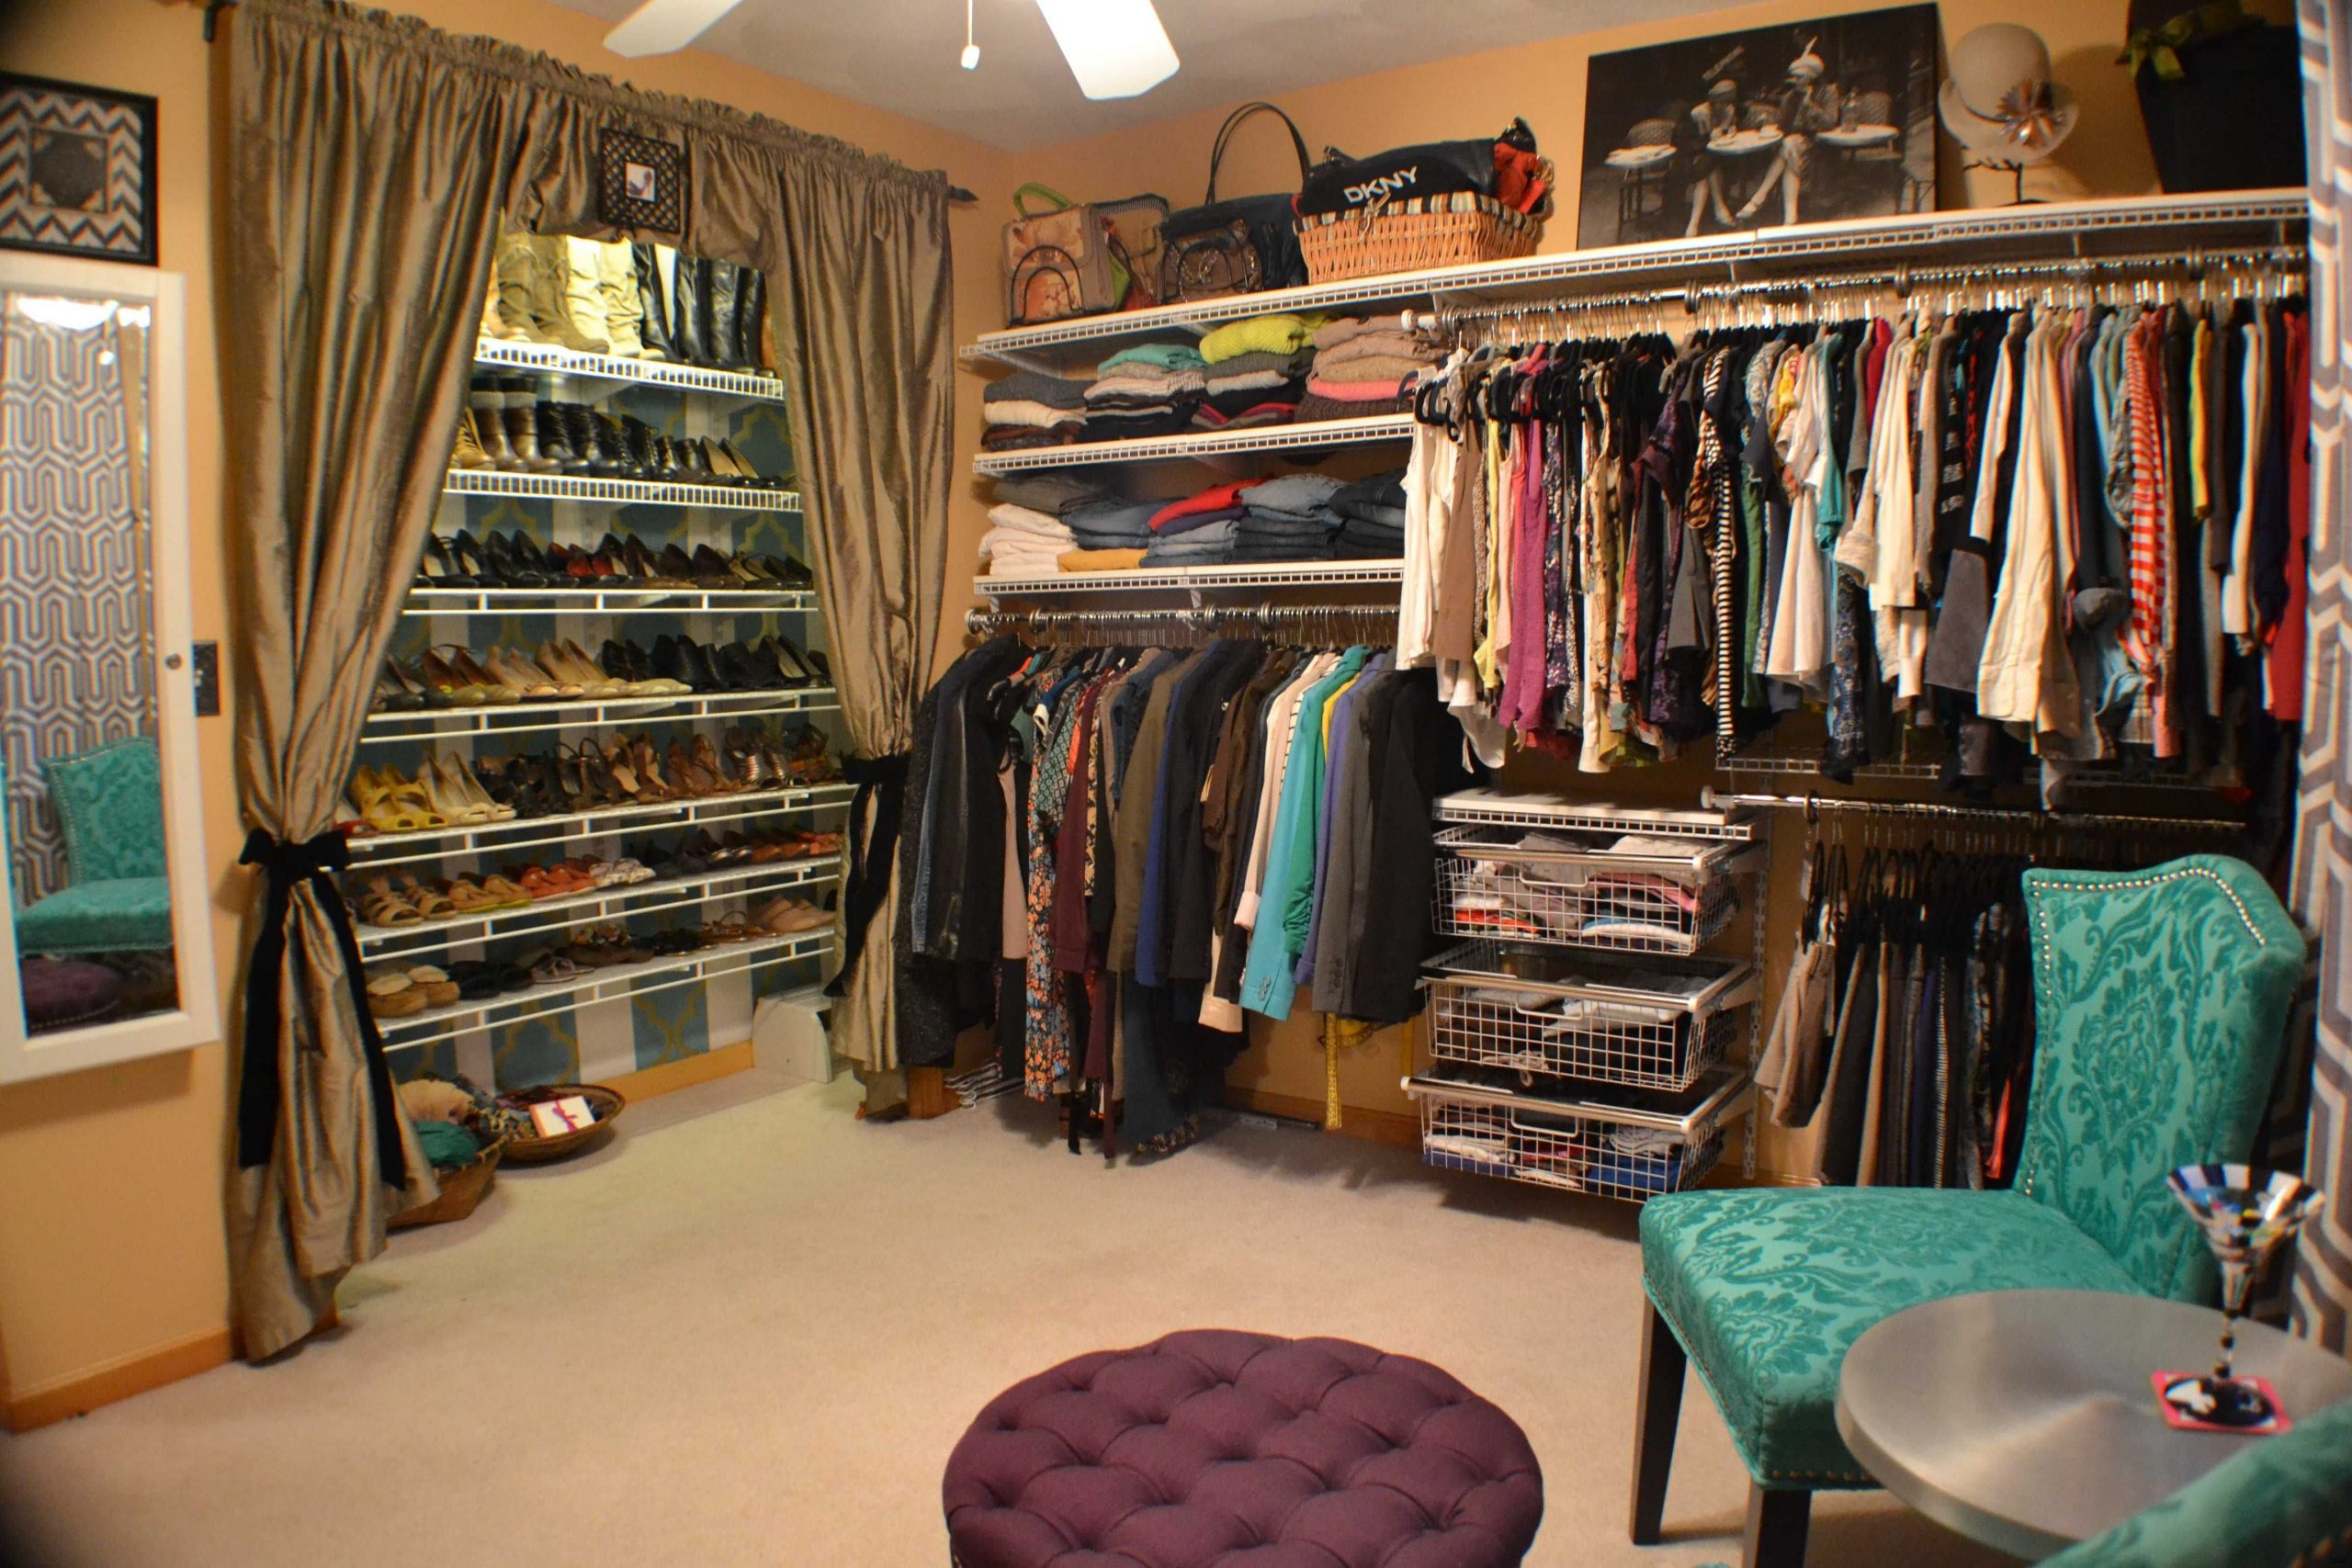 Simphome.com turning a small bedroom into walk in closet ideas clothes shoes room pertaining to turning a bedroom into a closet ideas